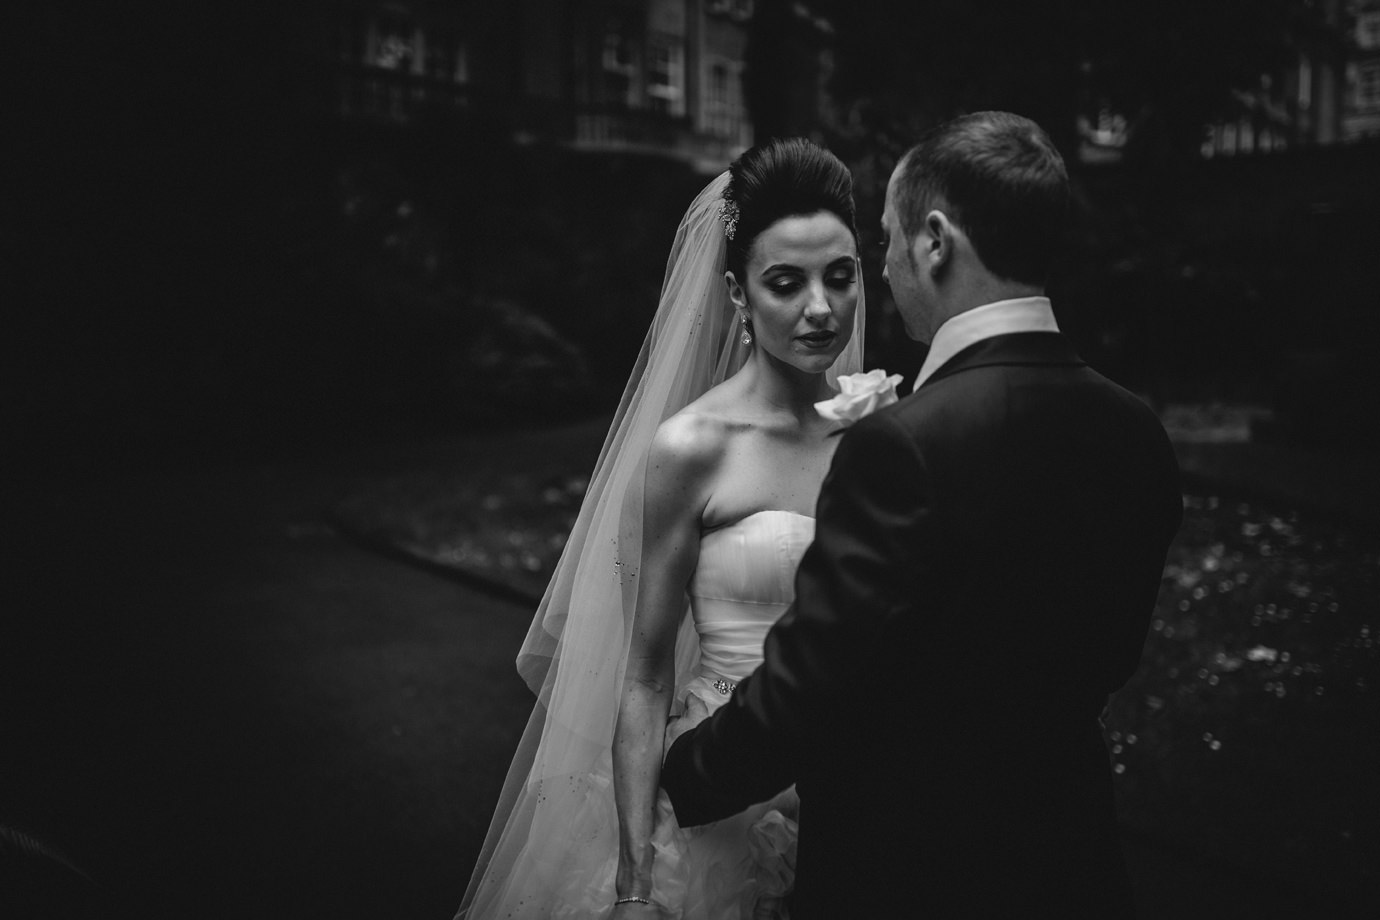 Claridges wedding photography – Jo and Charlotte